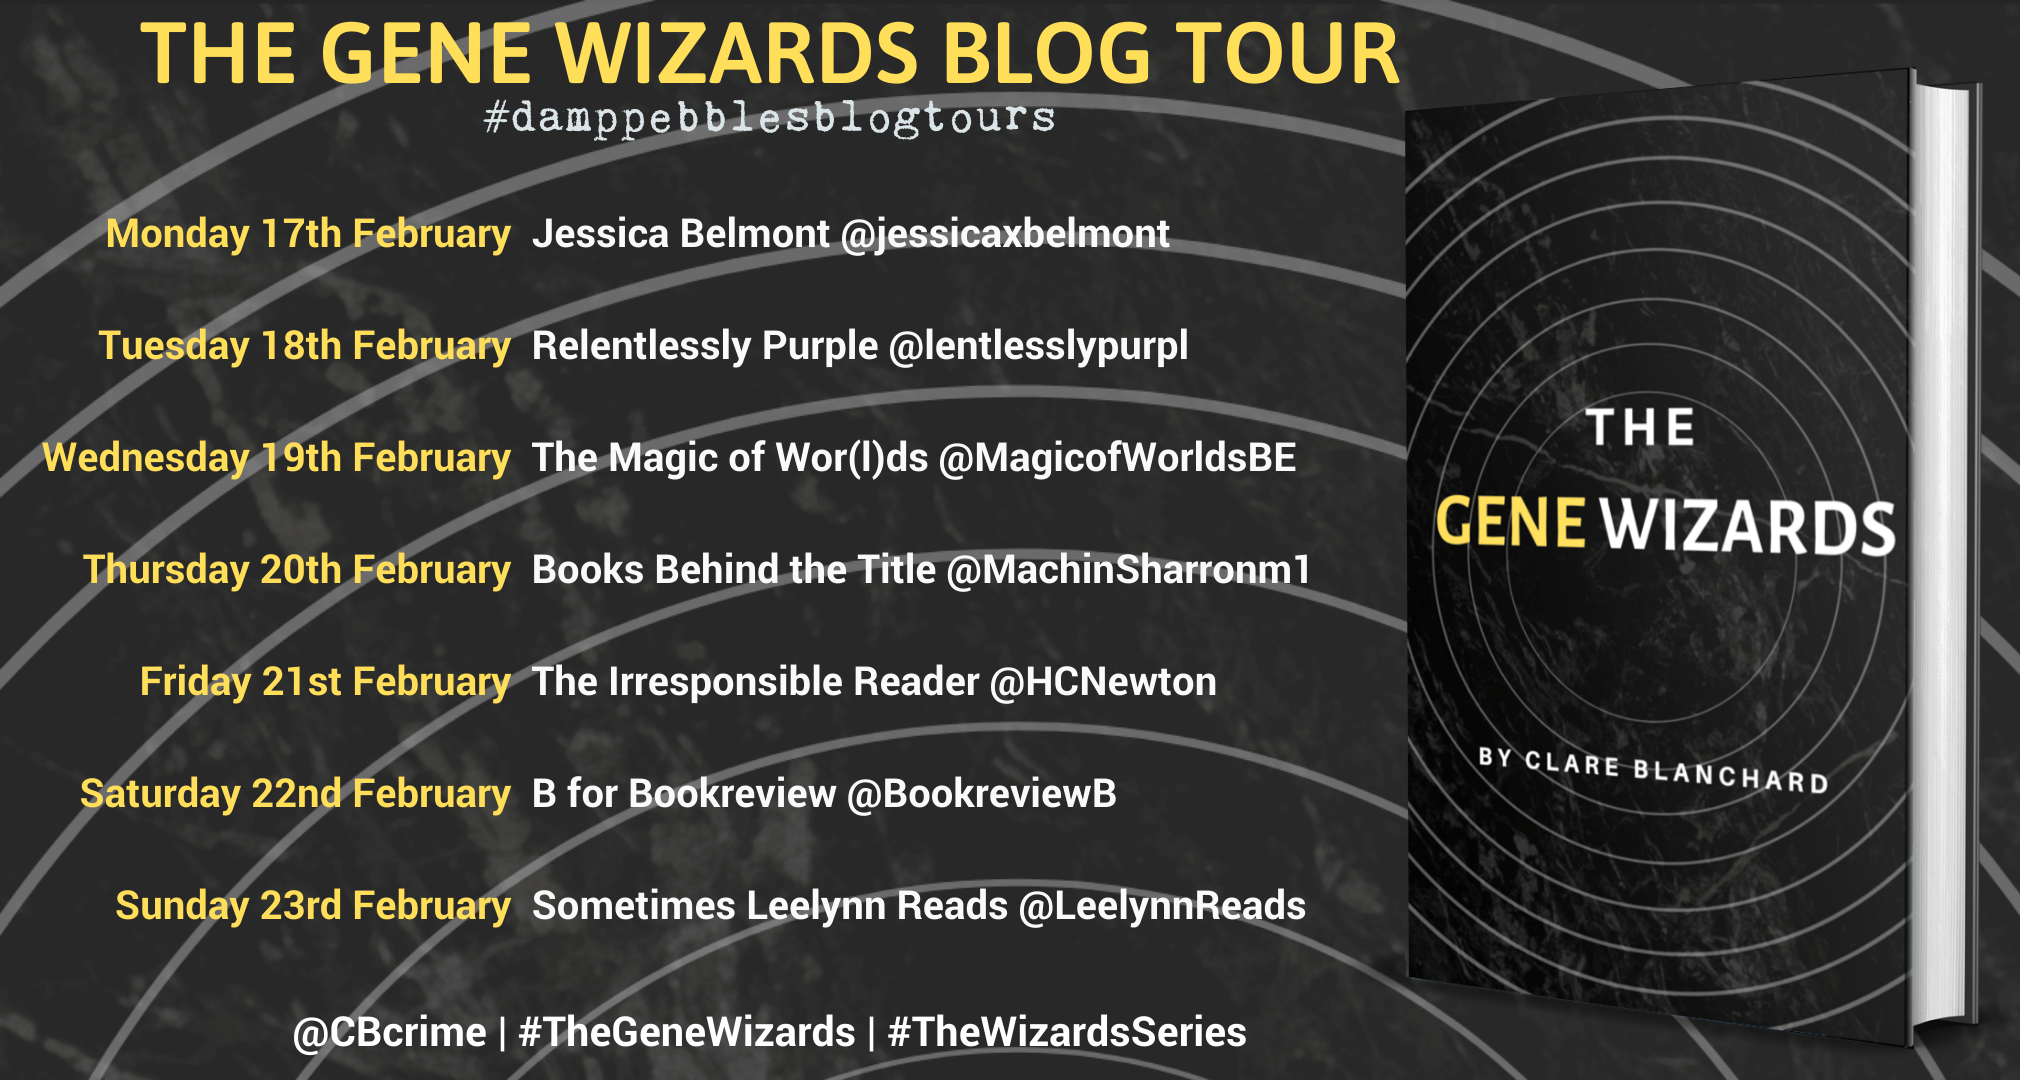 The Gene Wizards By Clare Blanchard – Blog Tour